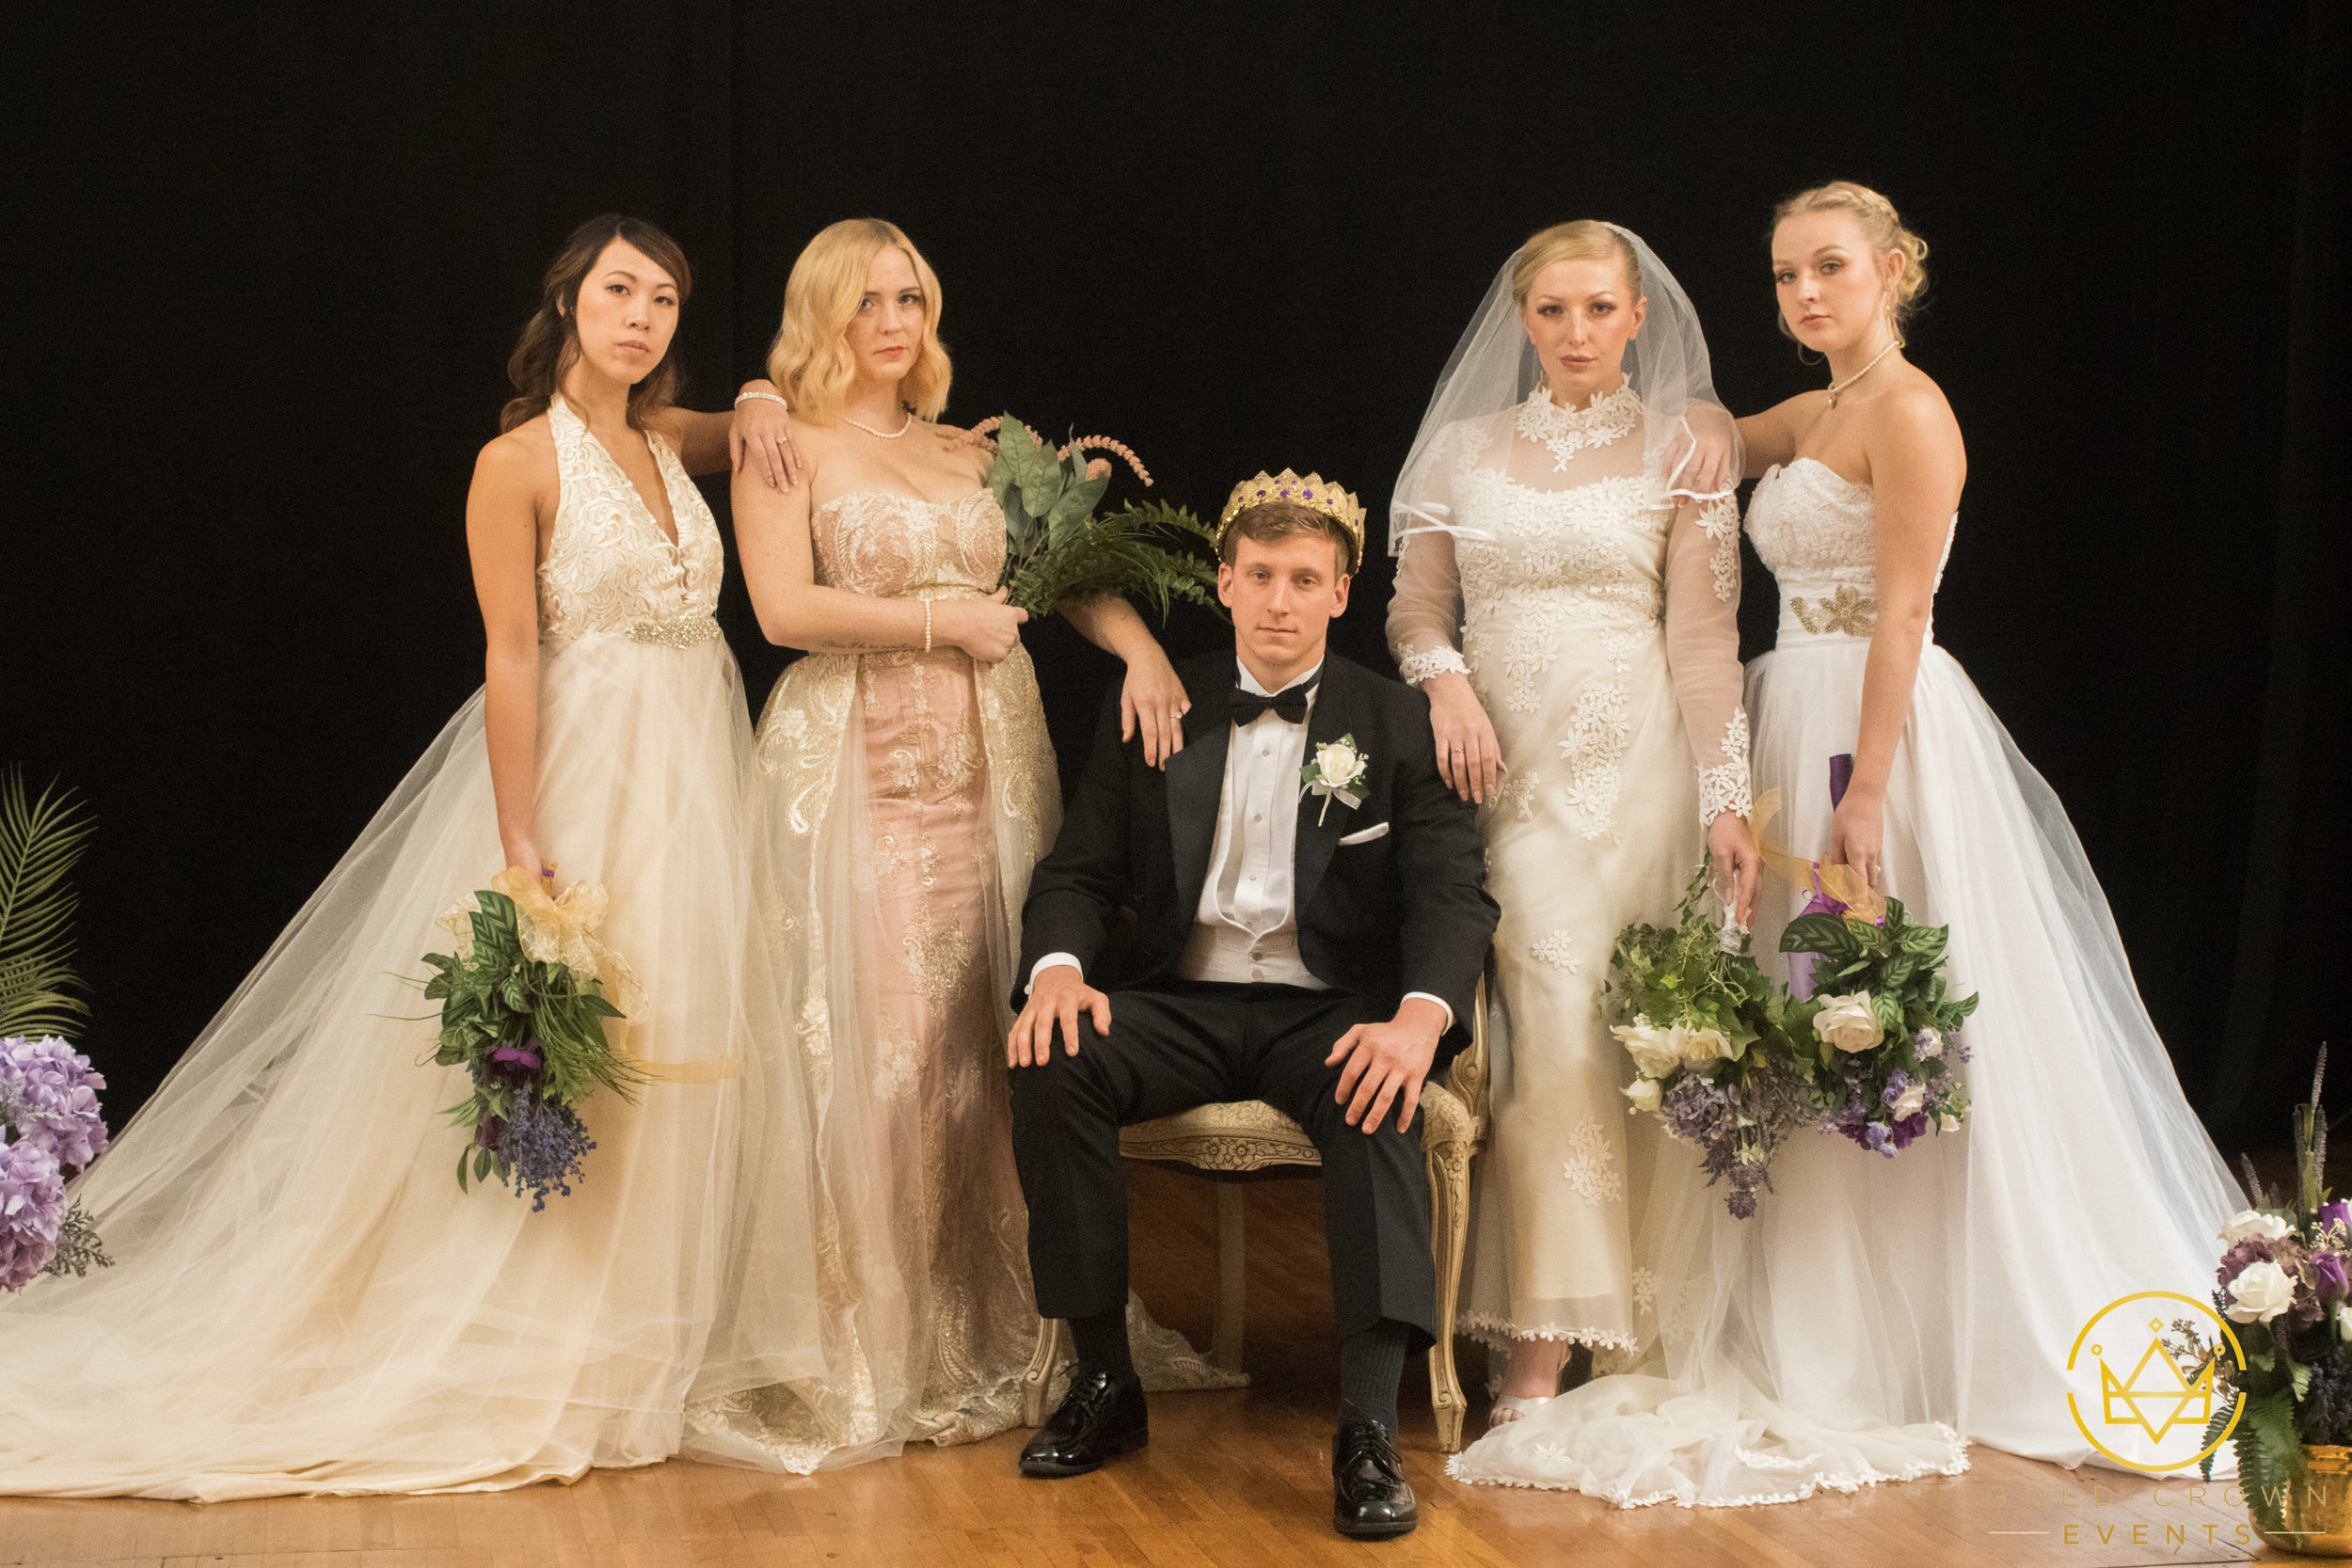 Pictured, from L to R: Christina Leung, Jesyka Noelle, Luke Jarvis, Mandy Jean and Caroline Kelly.